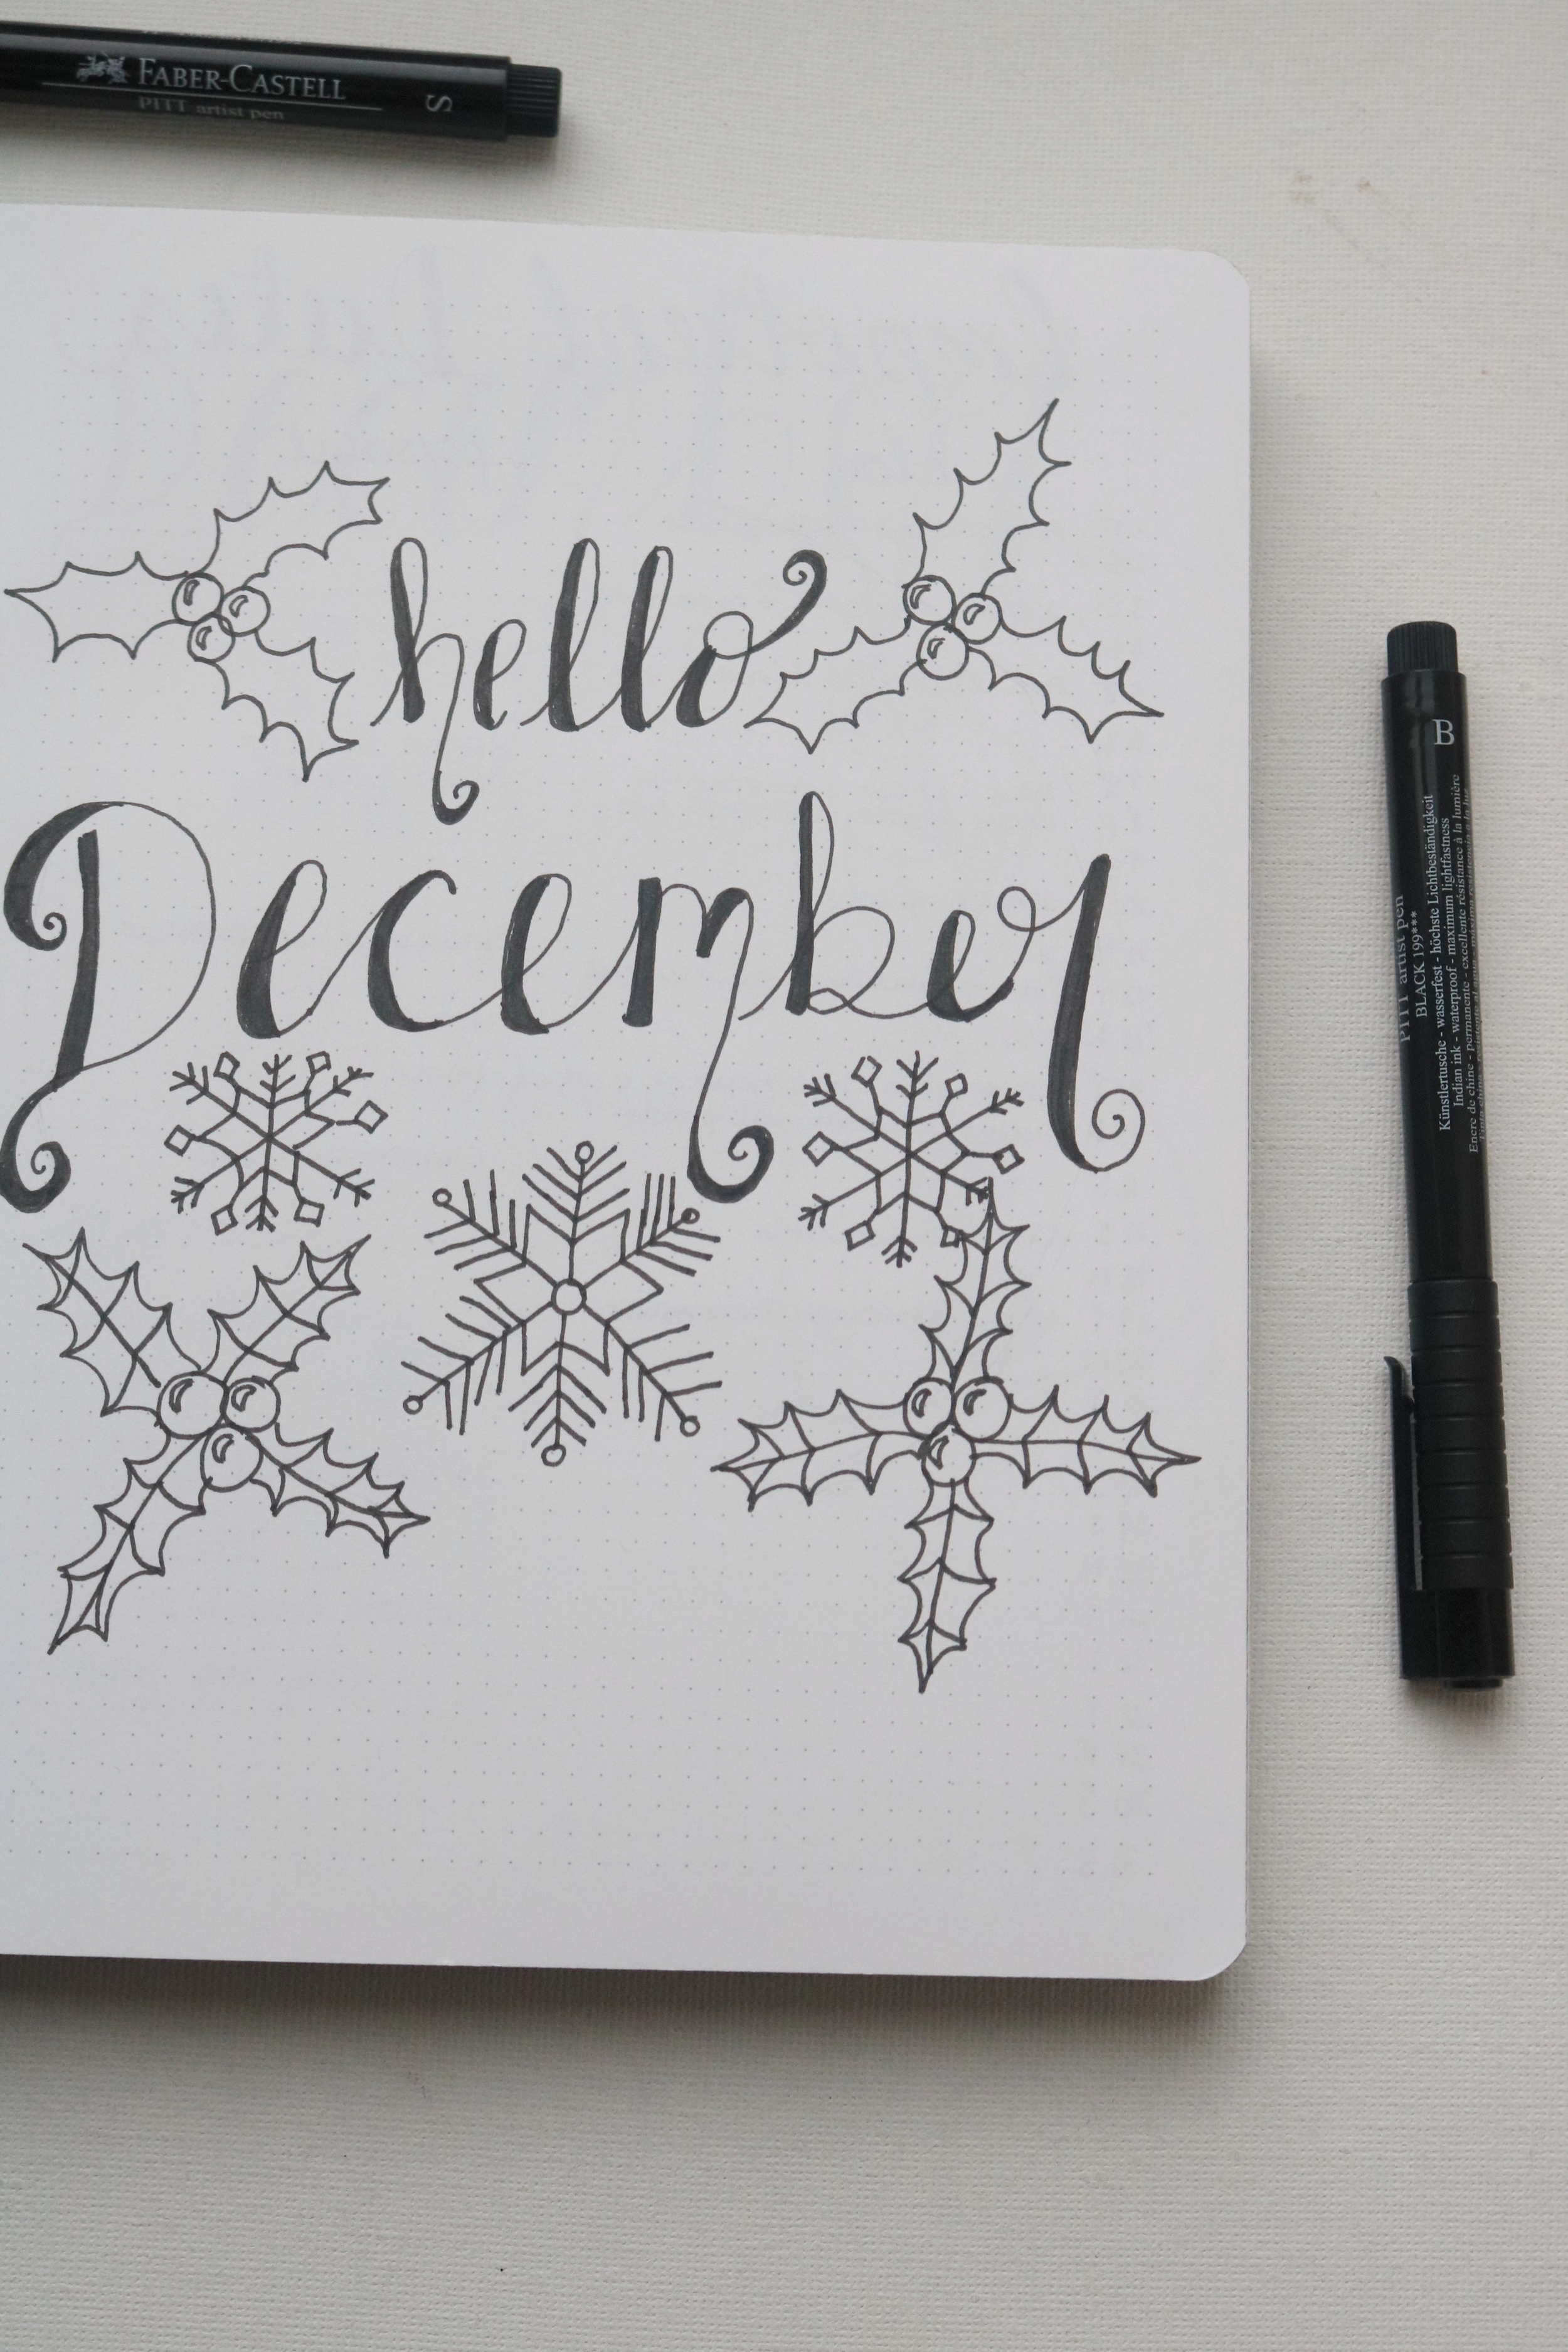 Hello Page - I normally like my bullet journal to be quite minimalist, but this month I decided to make sure that I used some of my creativity (at least for the front cover) and went for it with the holly and snowflakes. I really like how it turned out.